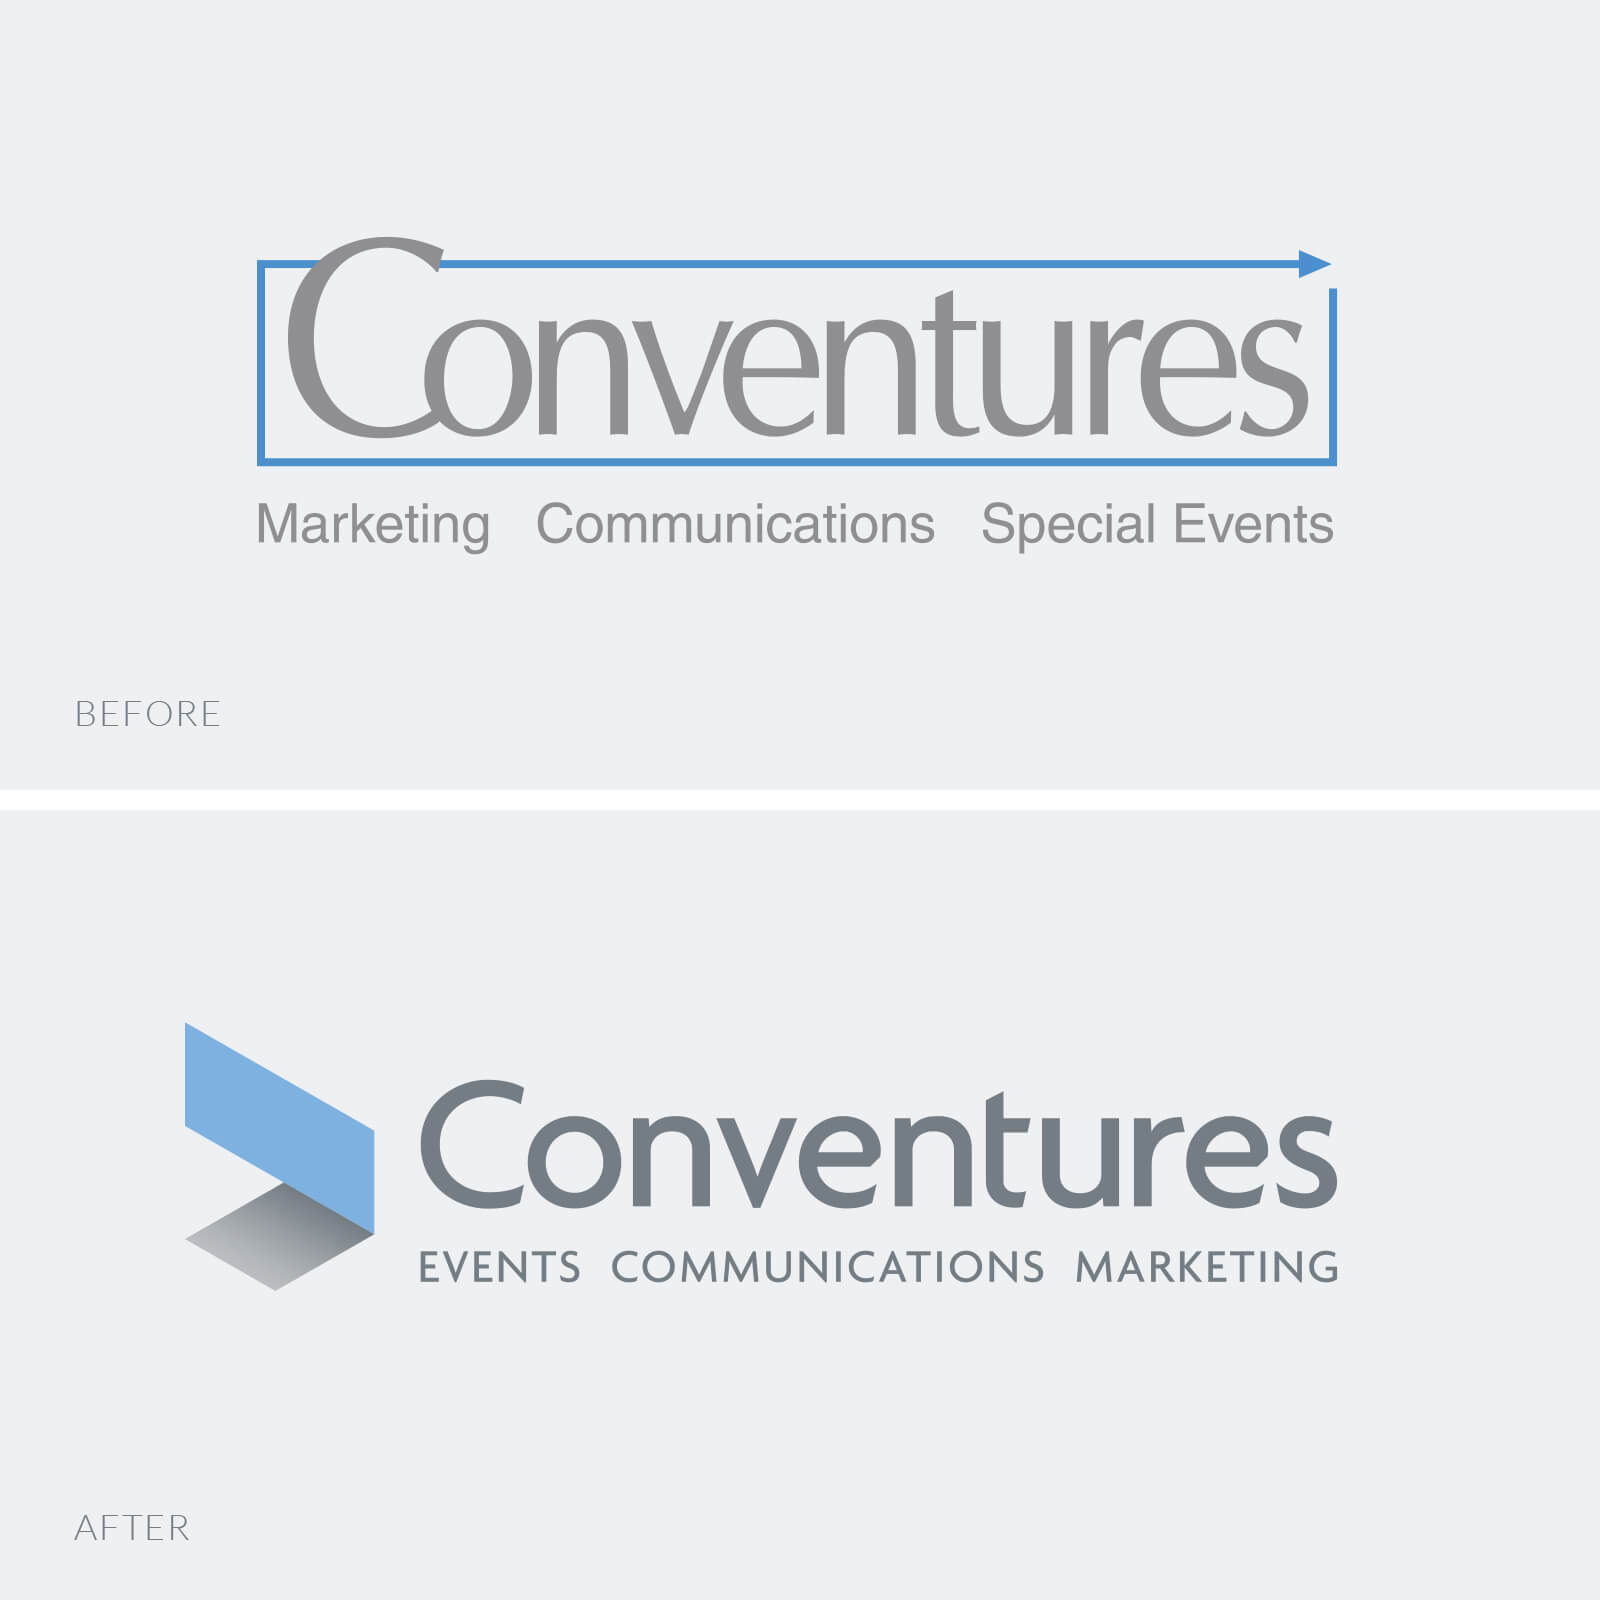 Conventures logo before and after